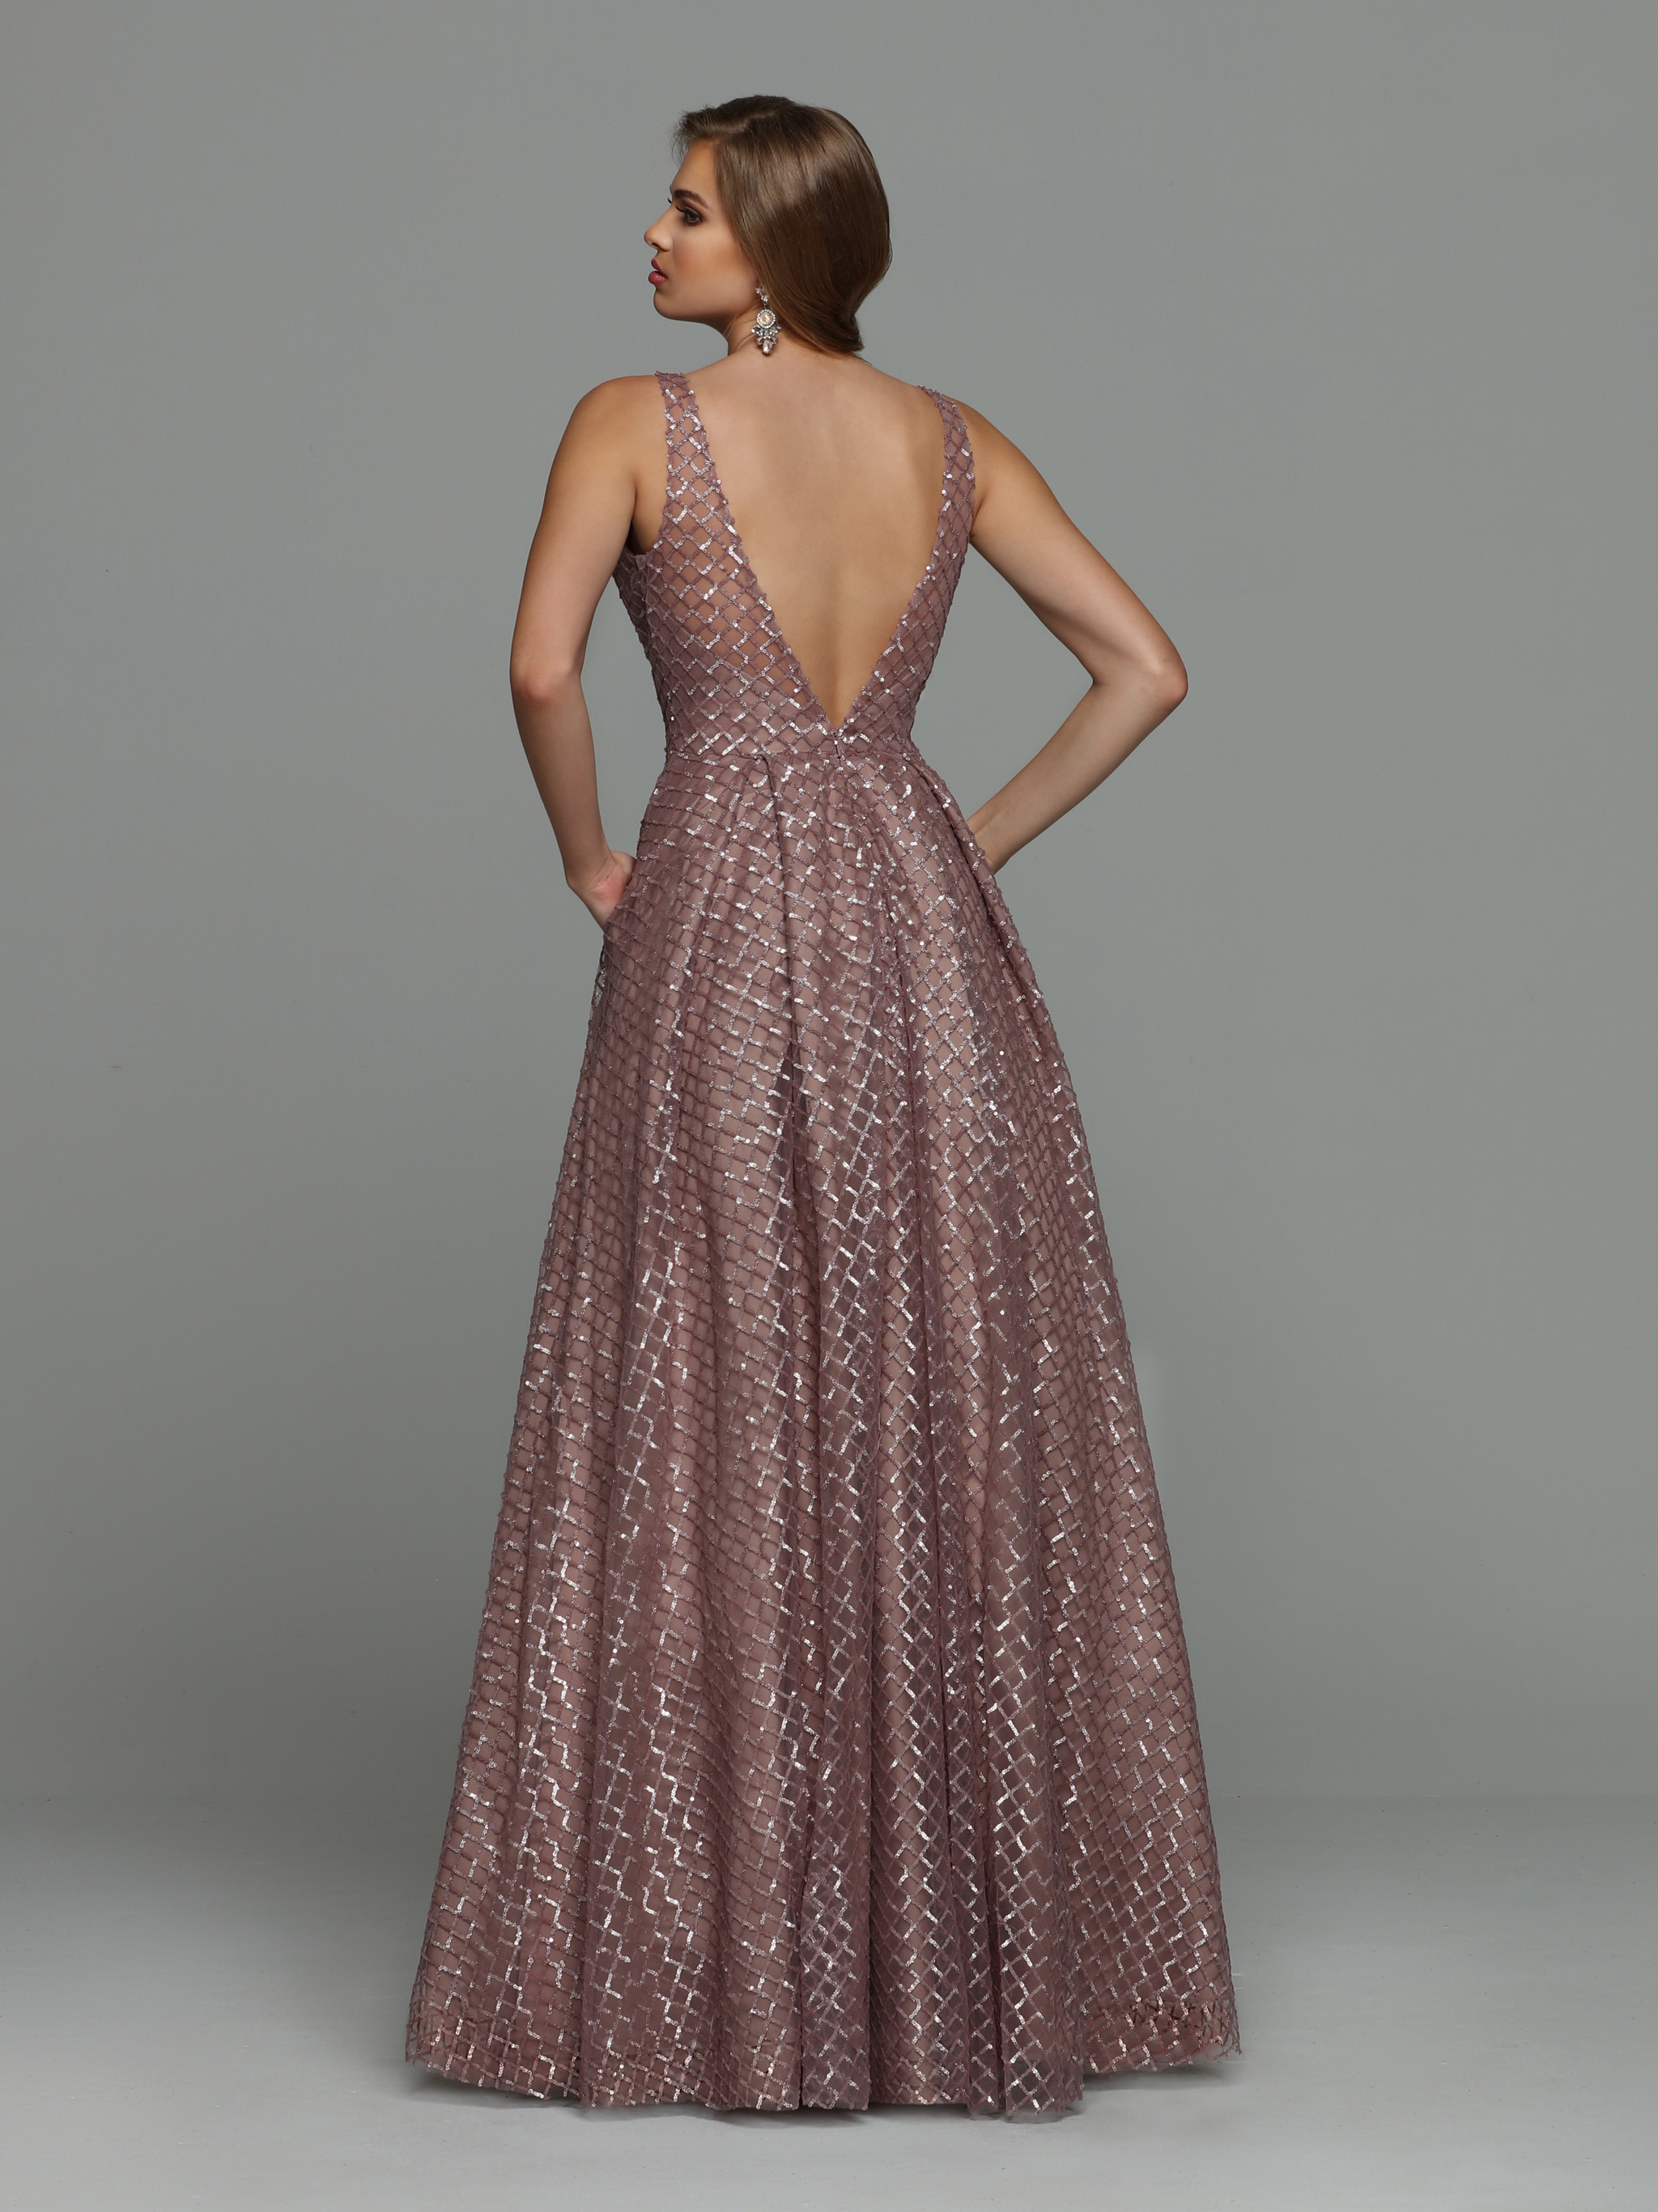 Image showing back view of style #71940